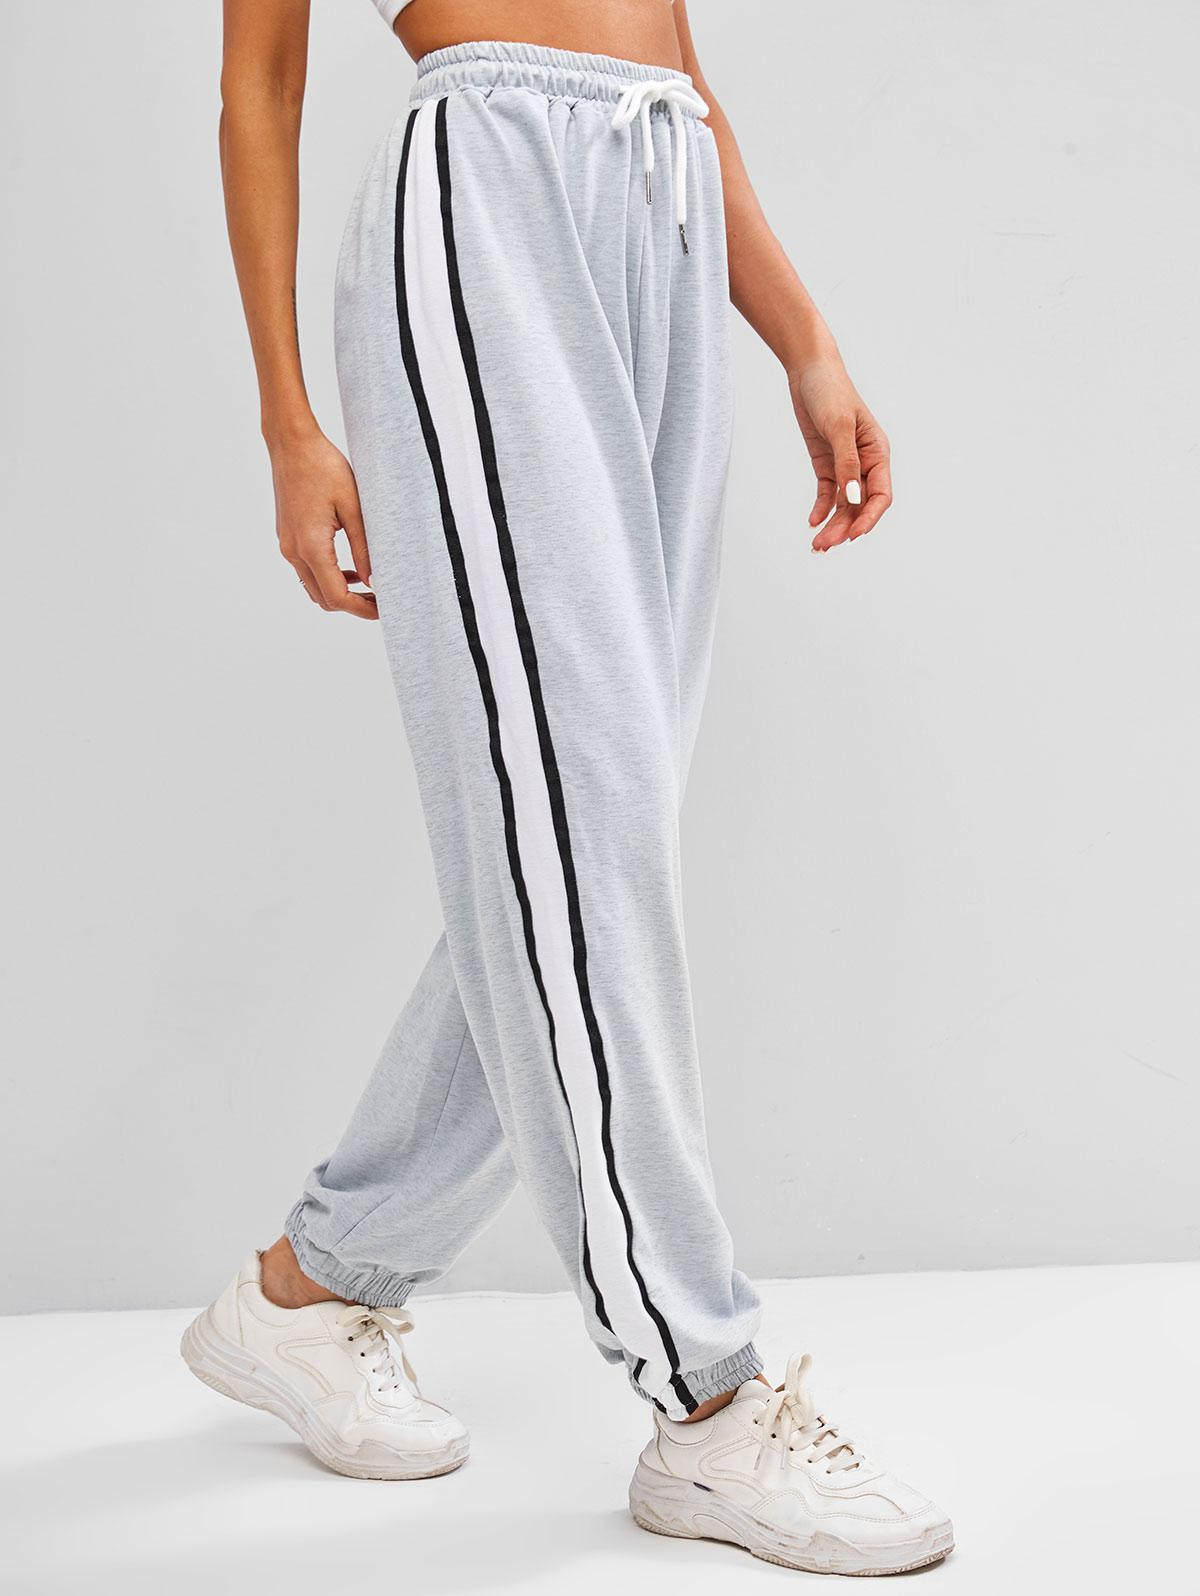 Striped Tape Colorblock Drawstring Sweatpants